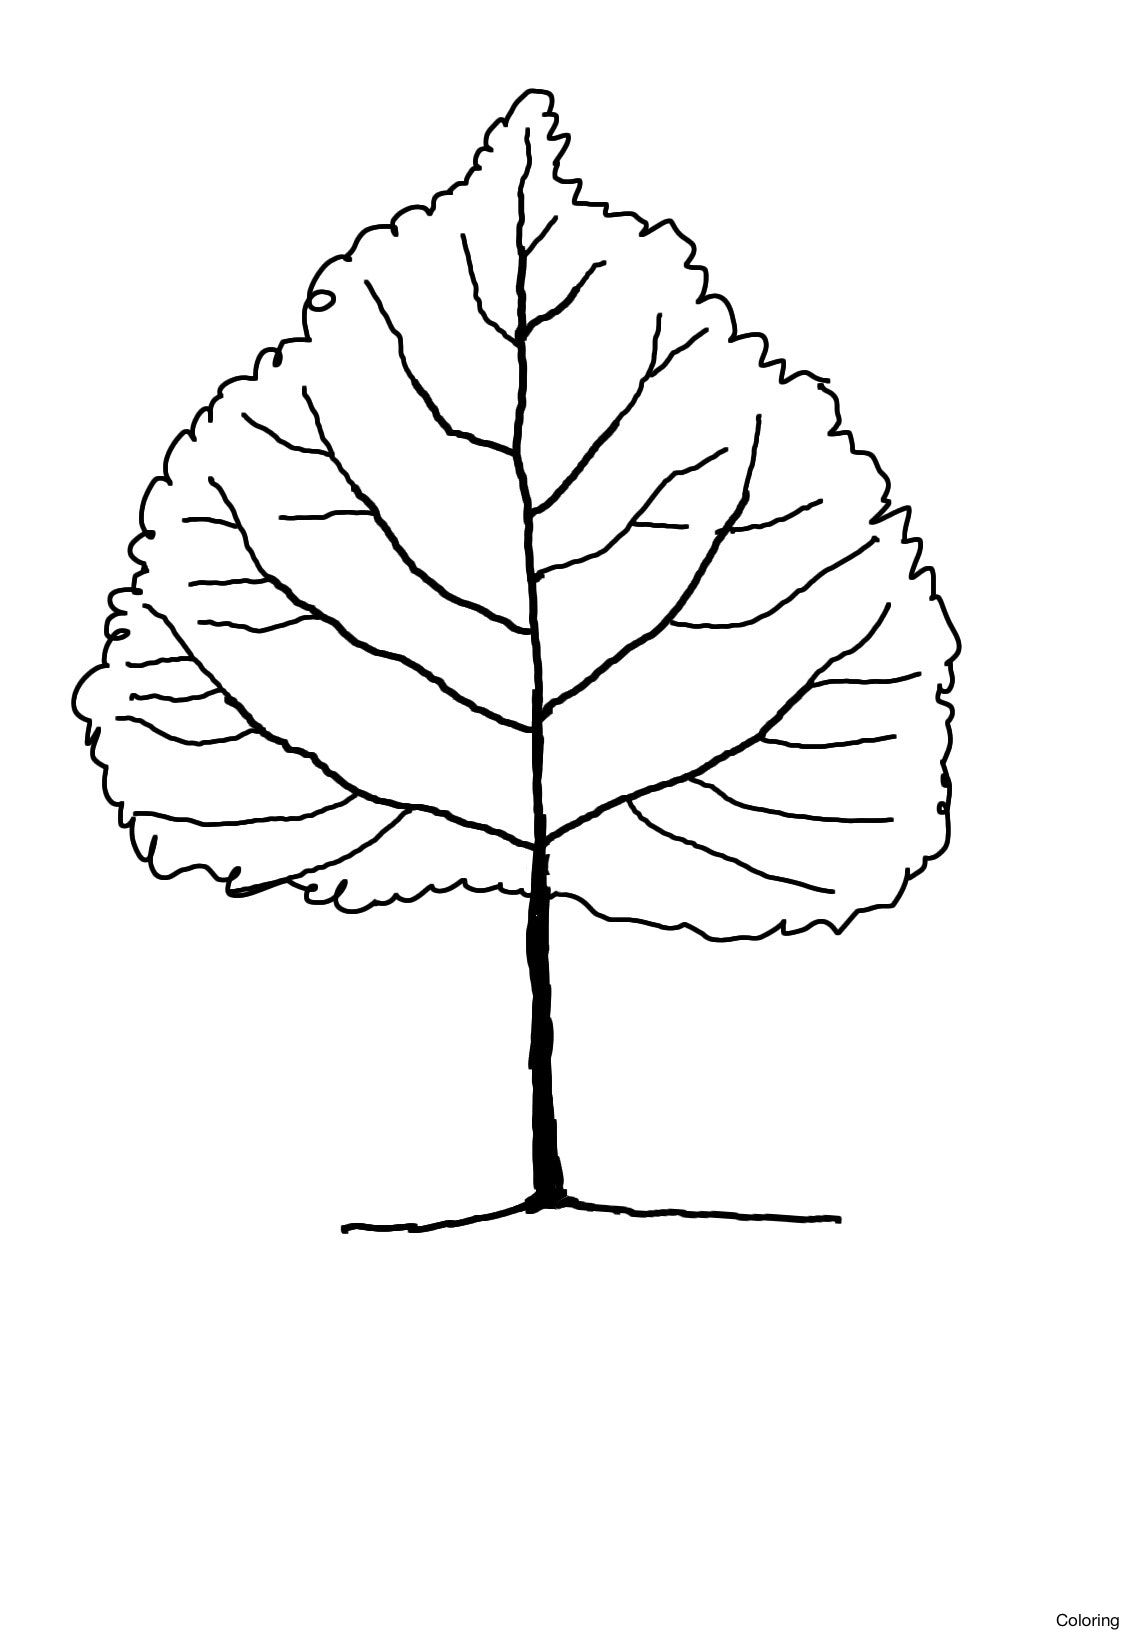 1130x1636 Drawing Leaves On Trees A Tree Without Art Library Of Coloring 28f